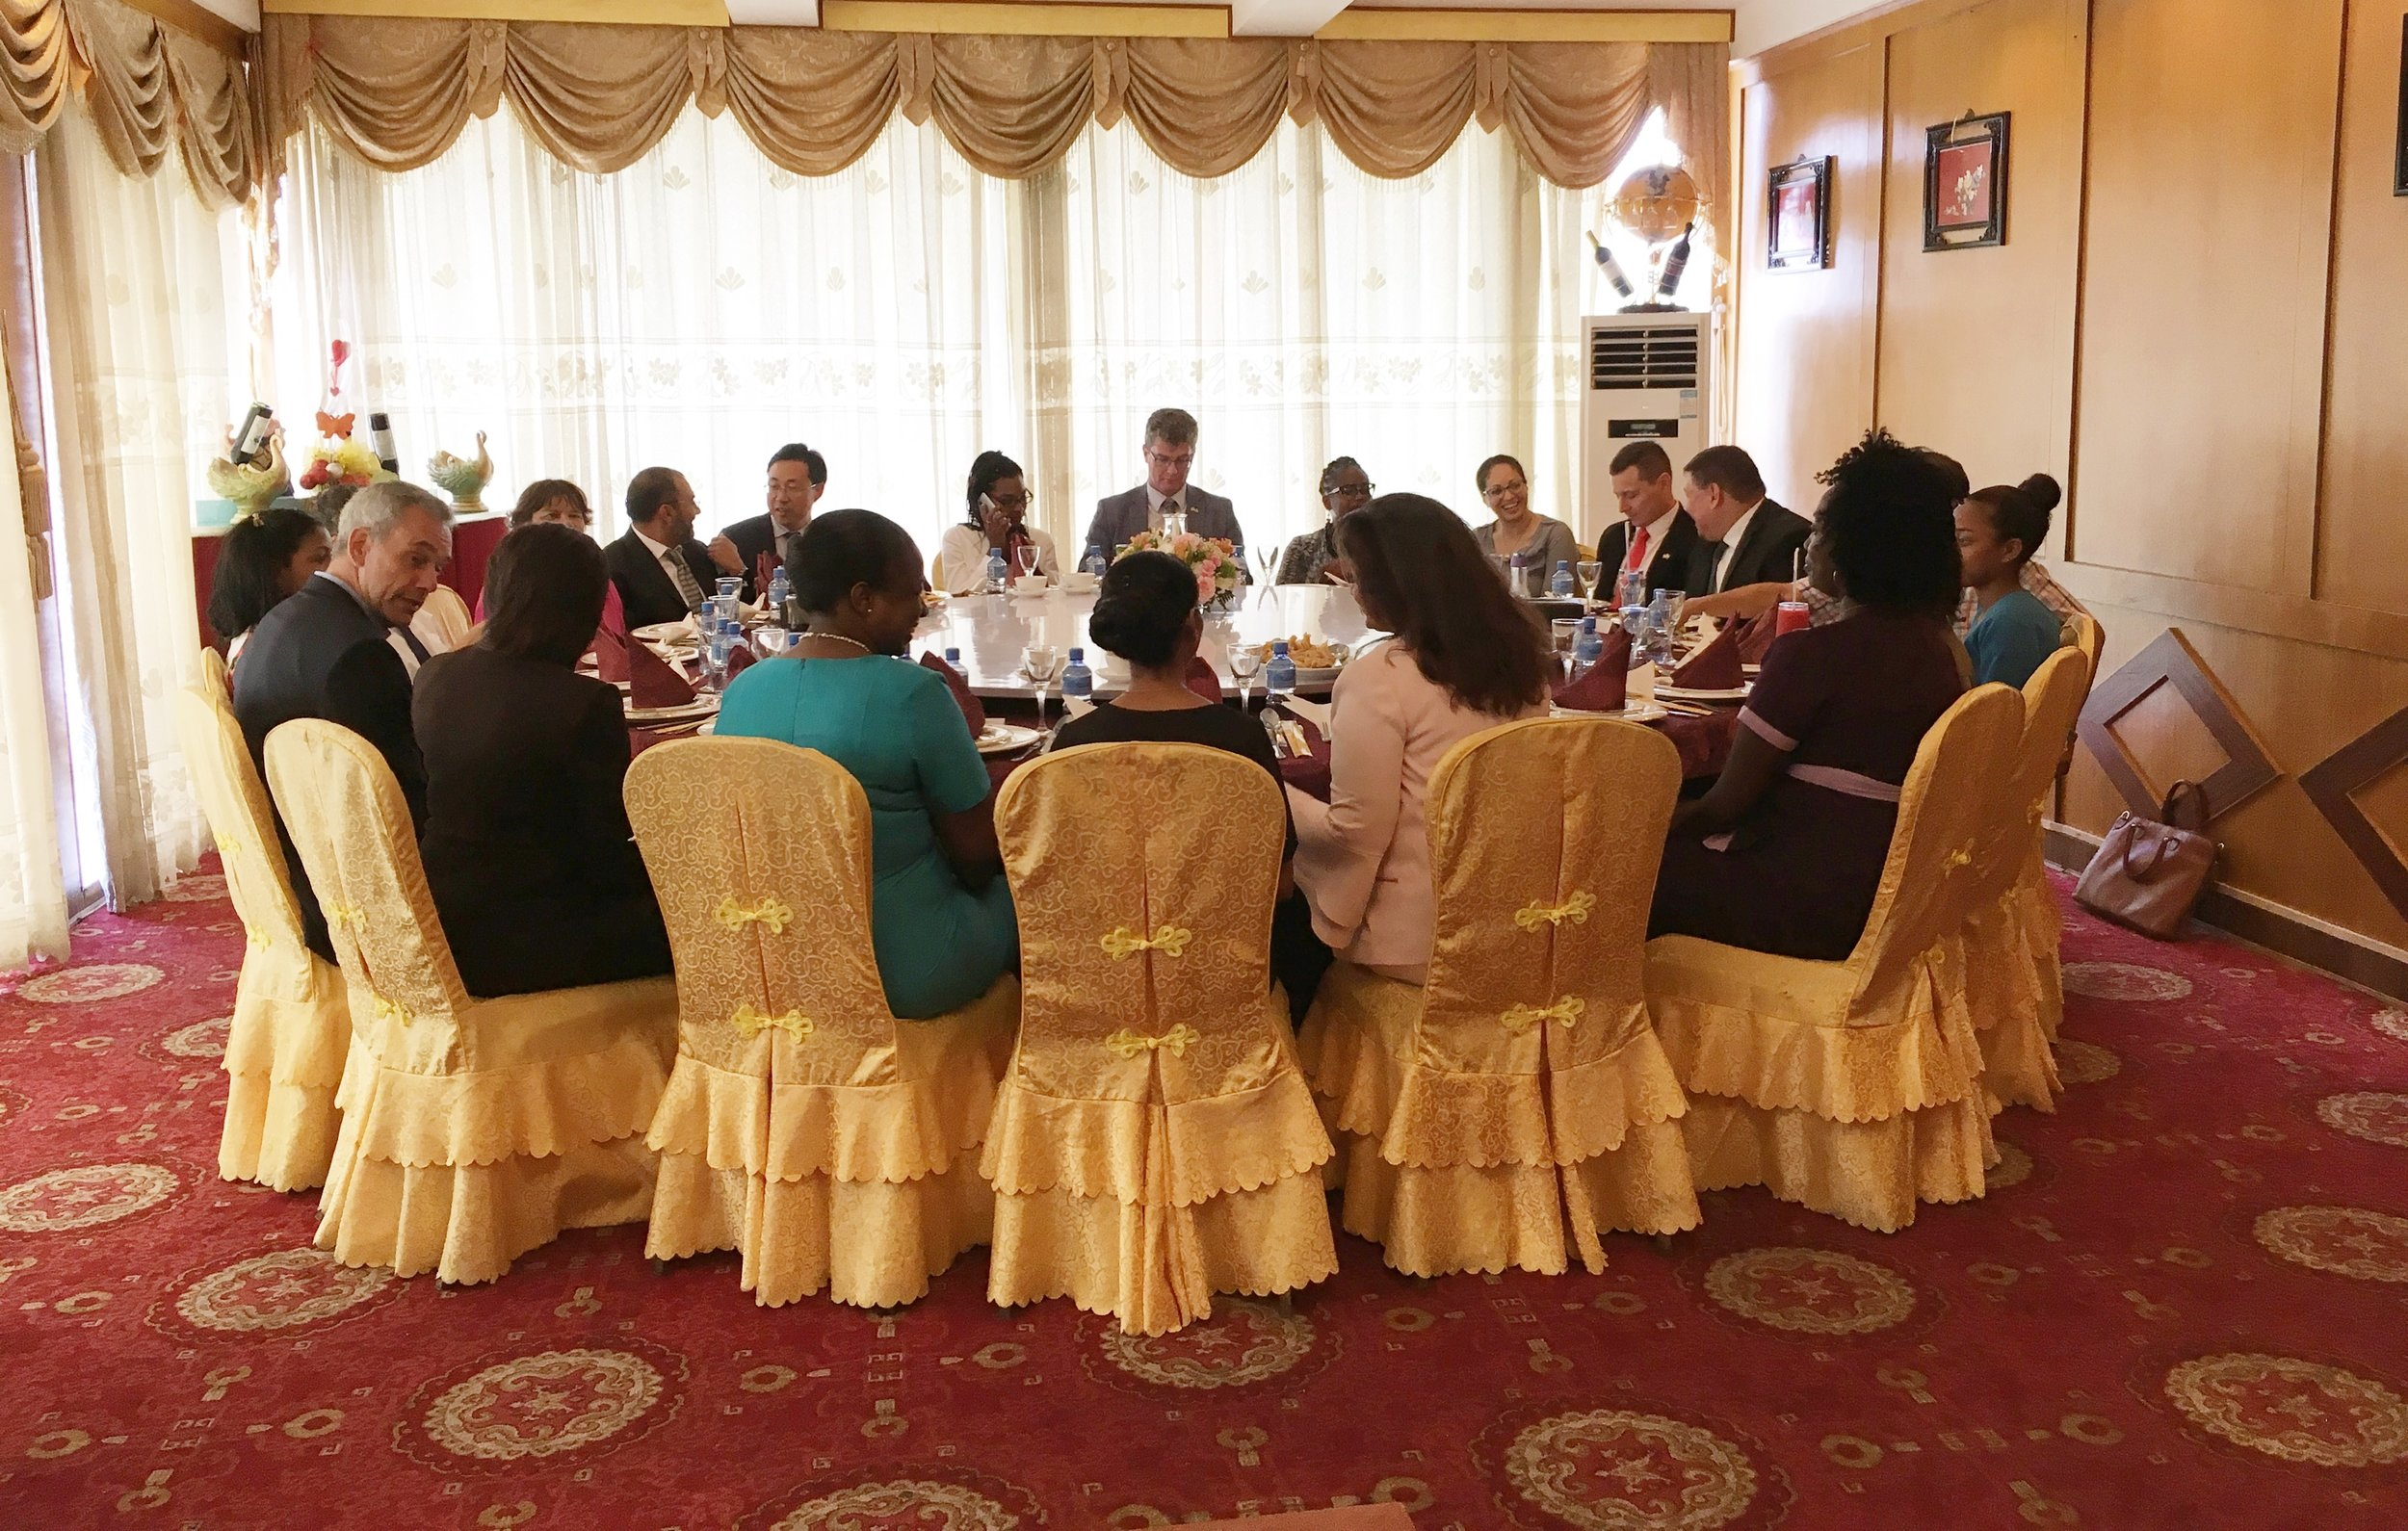 Press Conference/Luncheon: The Guyana Foundation Team having lunch with Special Invitees and members of the Diplomatic Corps.